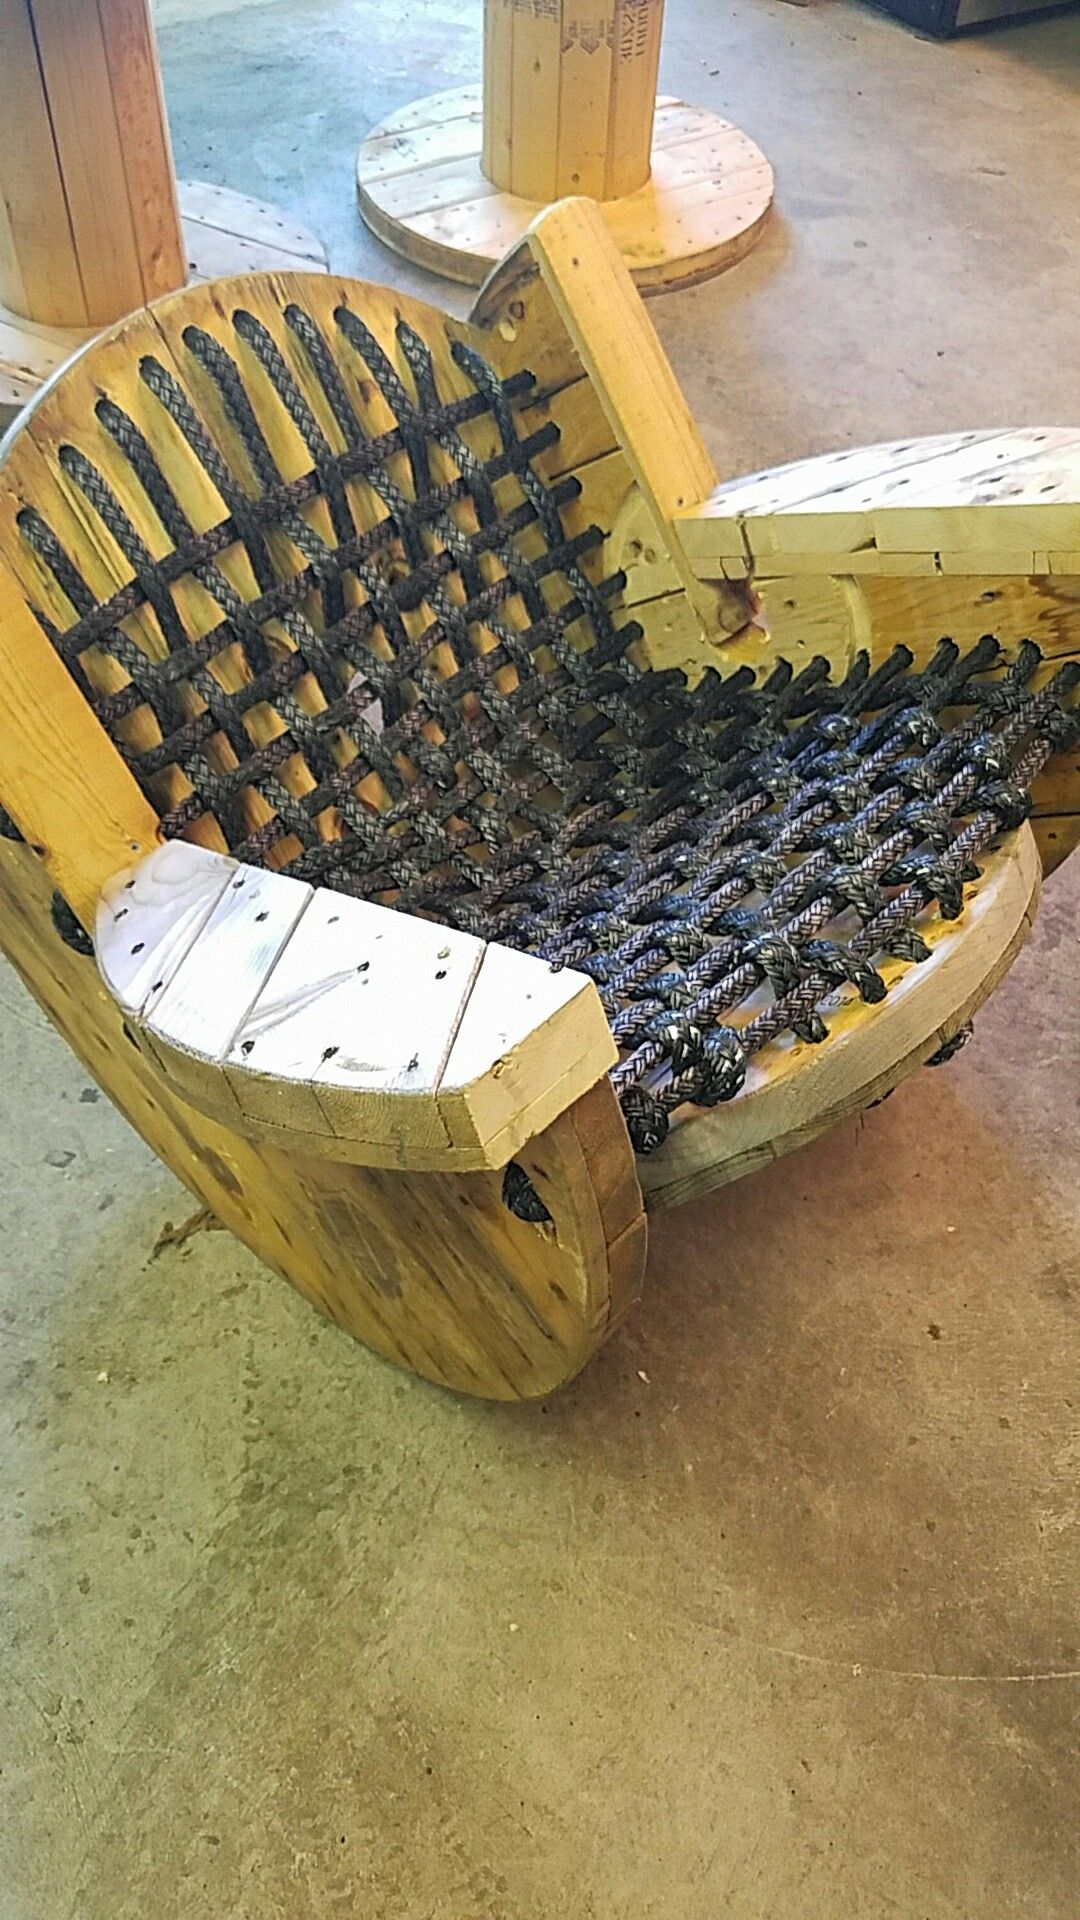 Recycled Wood Reel Turned Into A Rocking Chair, Woven